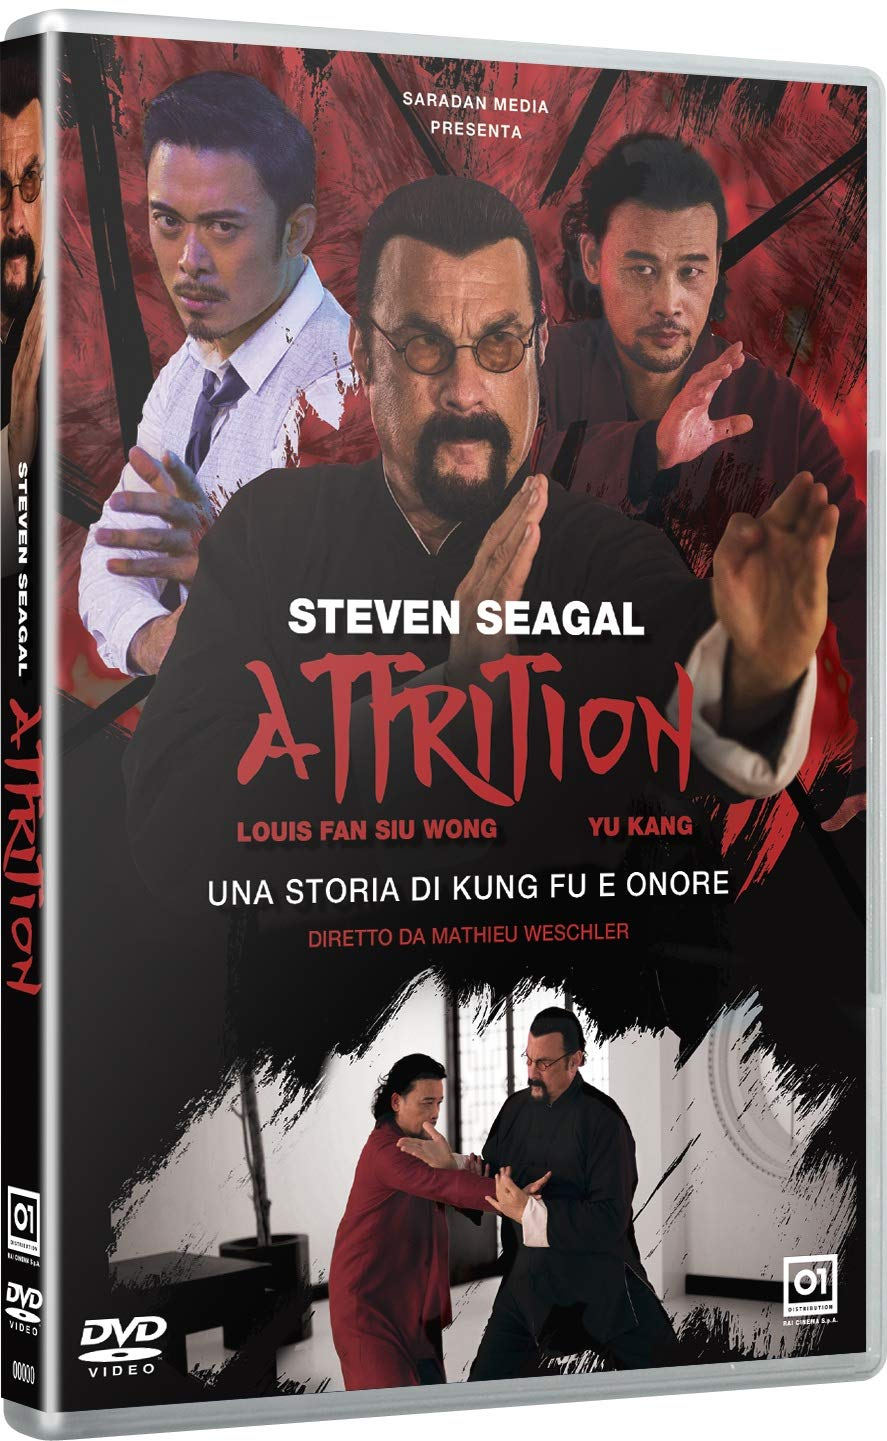 ATTRITION (DVD)